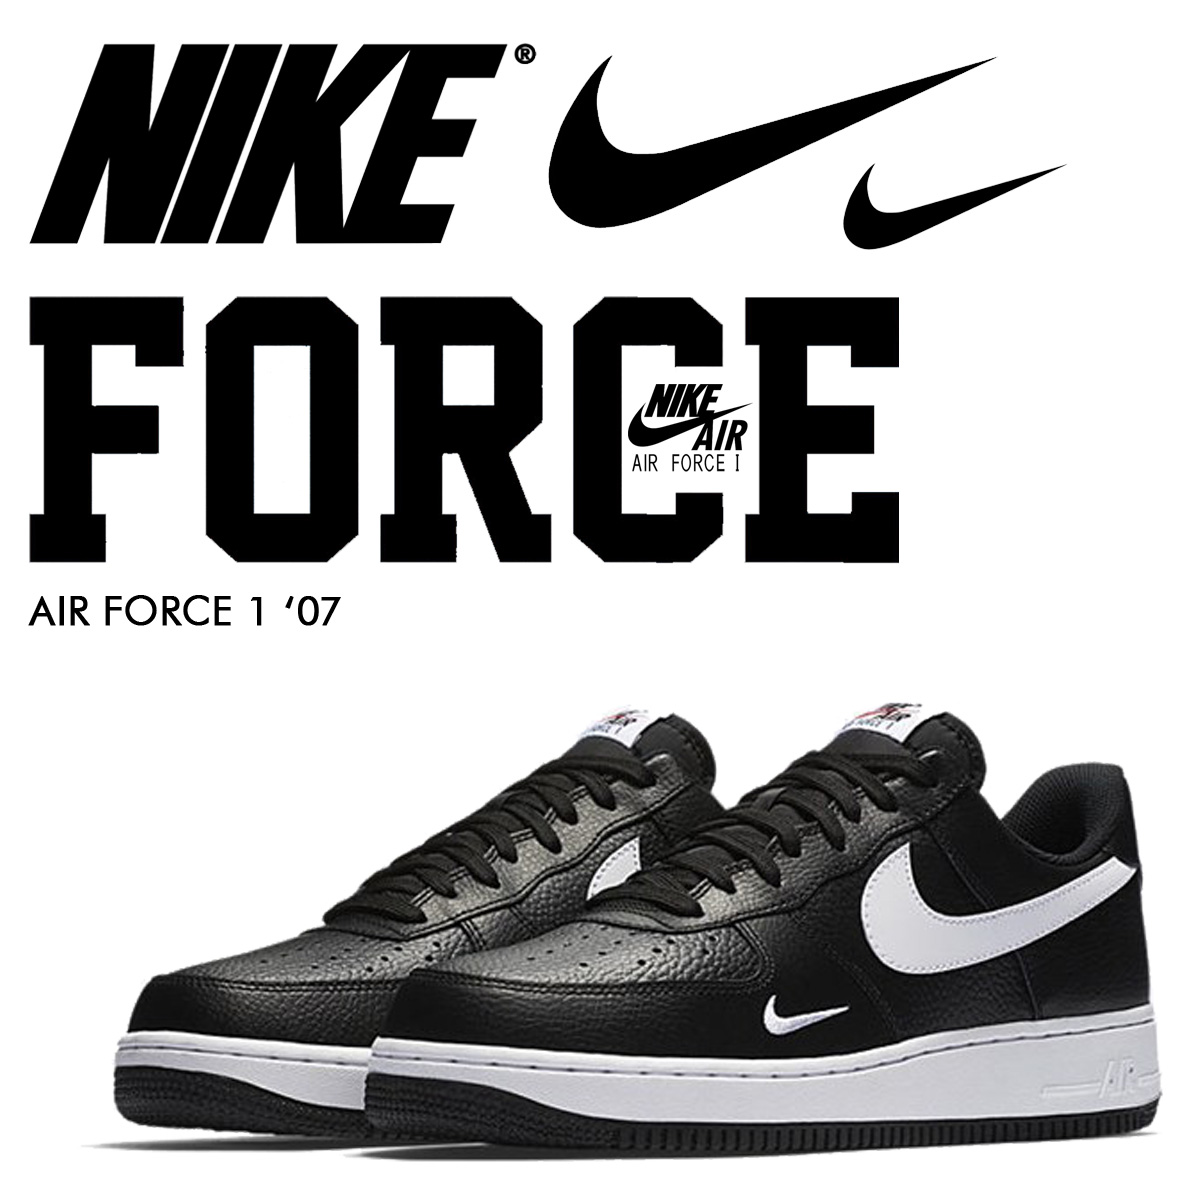 air force 1 logo.